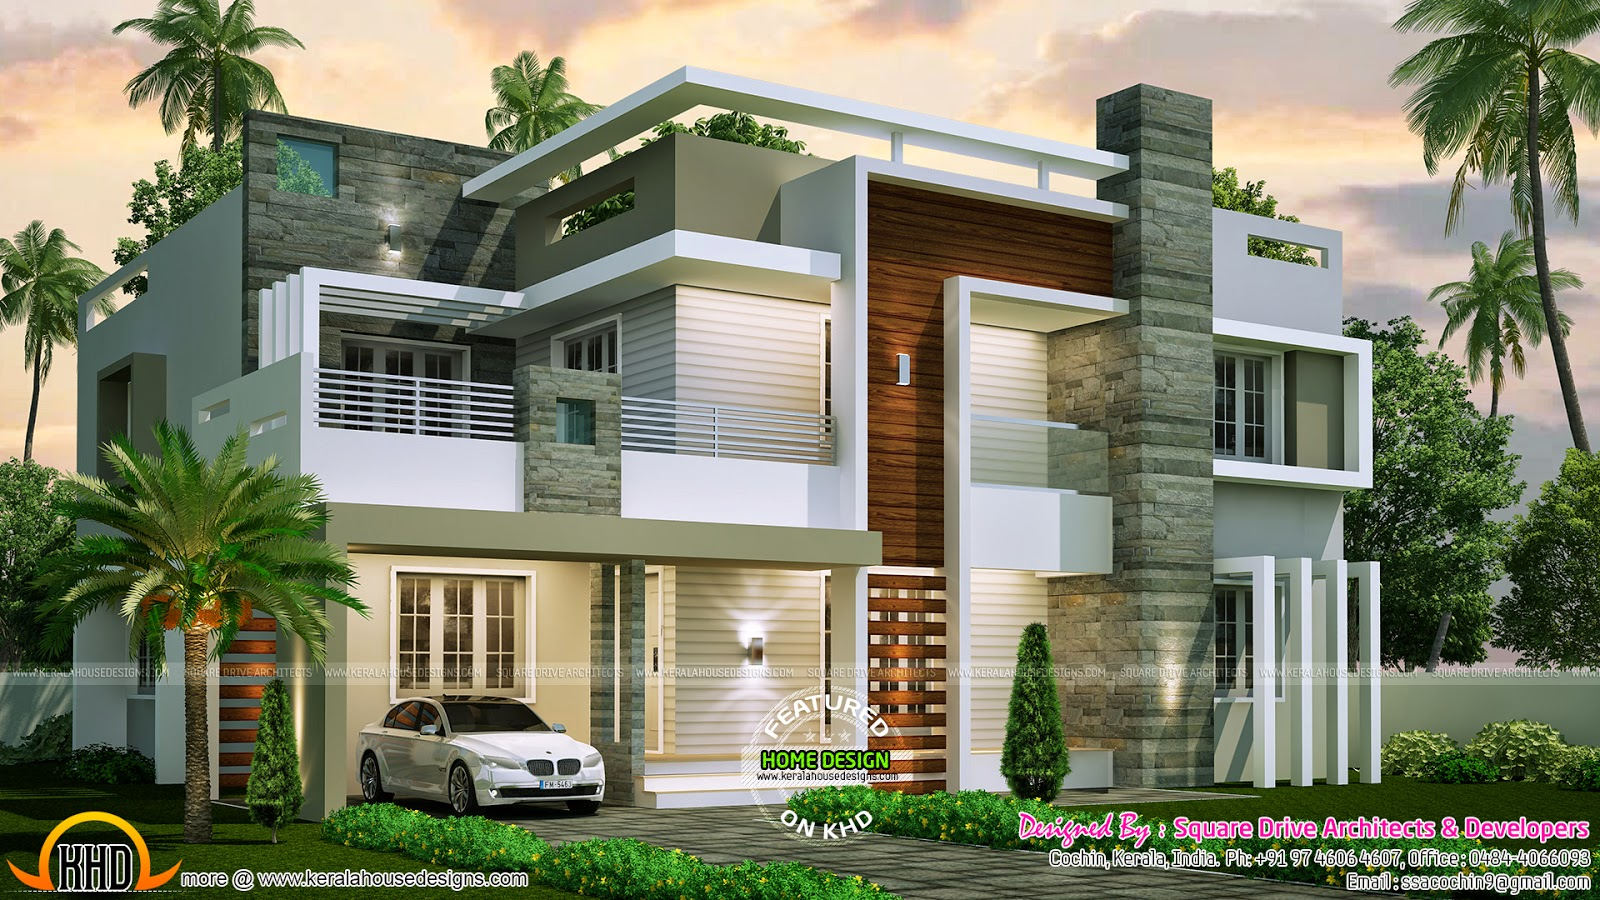 4 bedroom contemporary home design kerala home design for Home building design